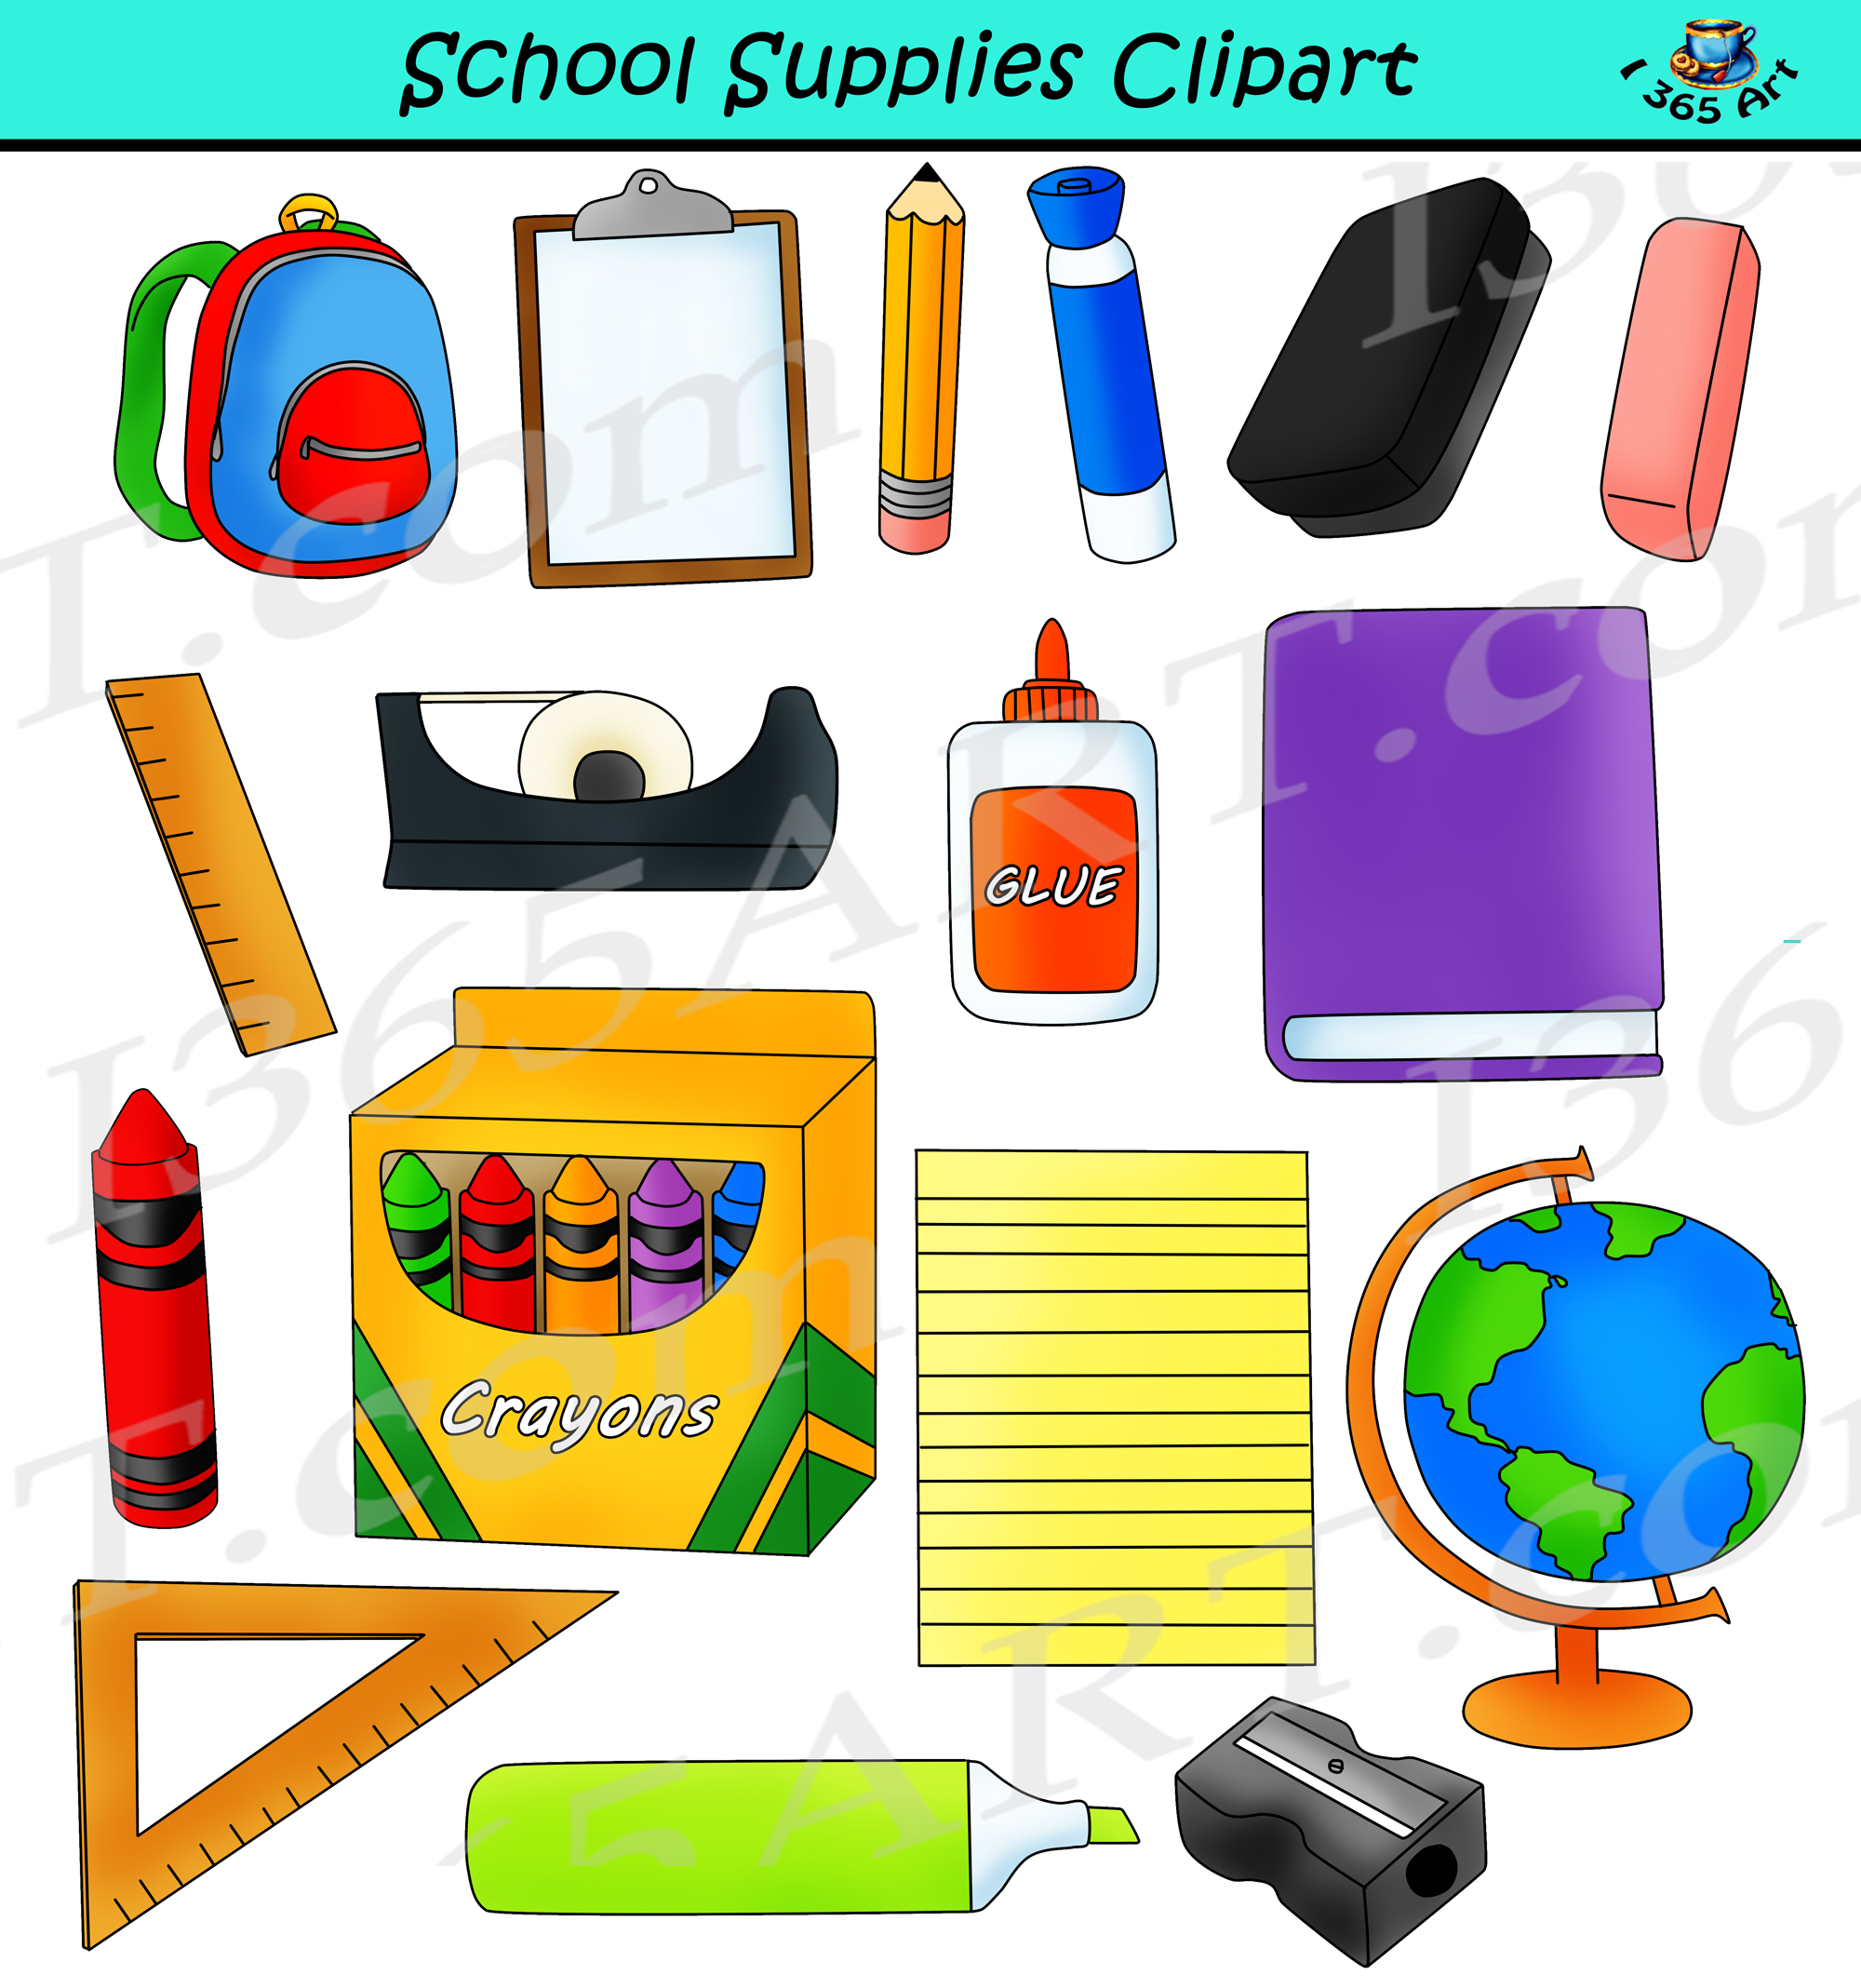 Crayon clipart school item. Supplies back to commercial